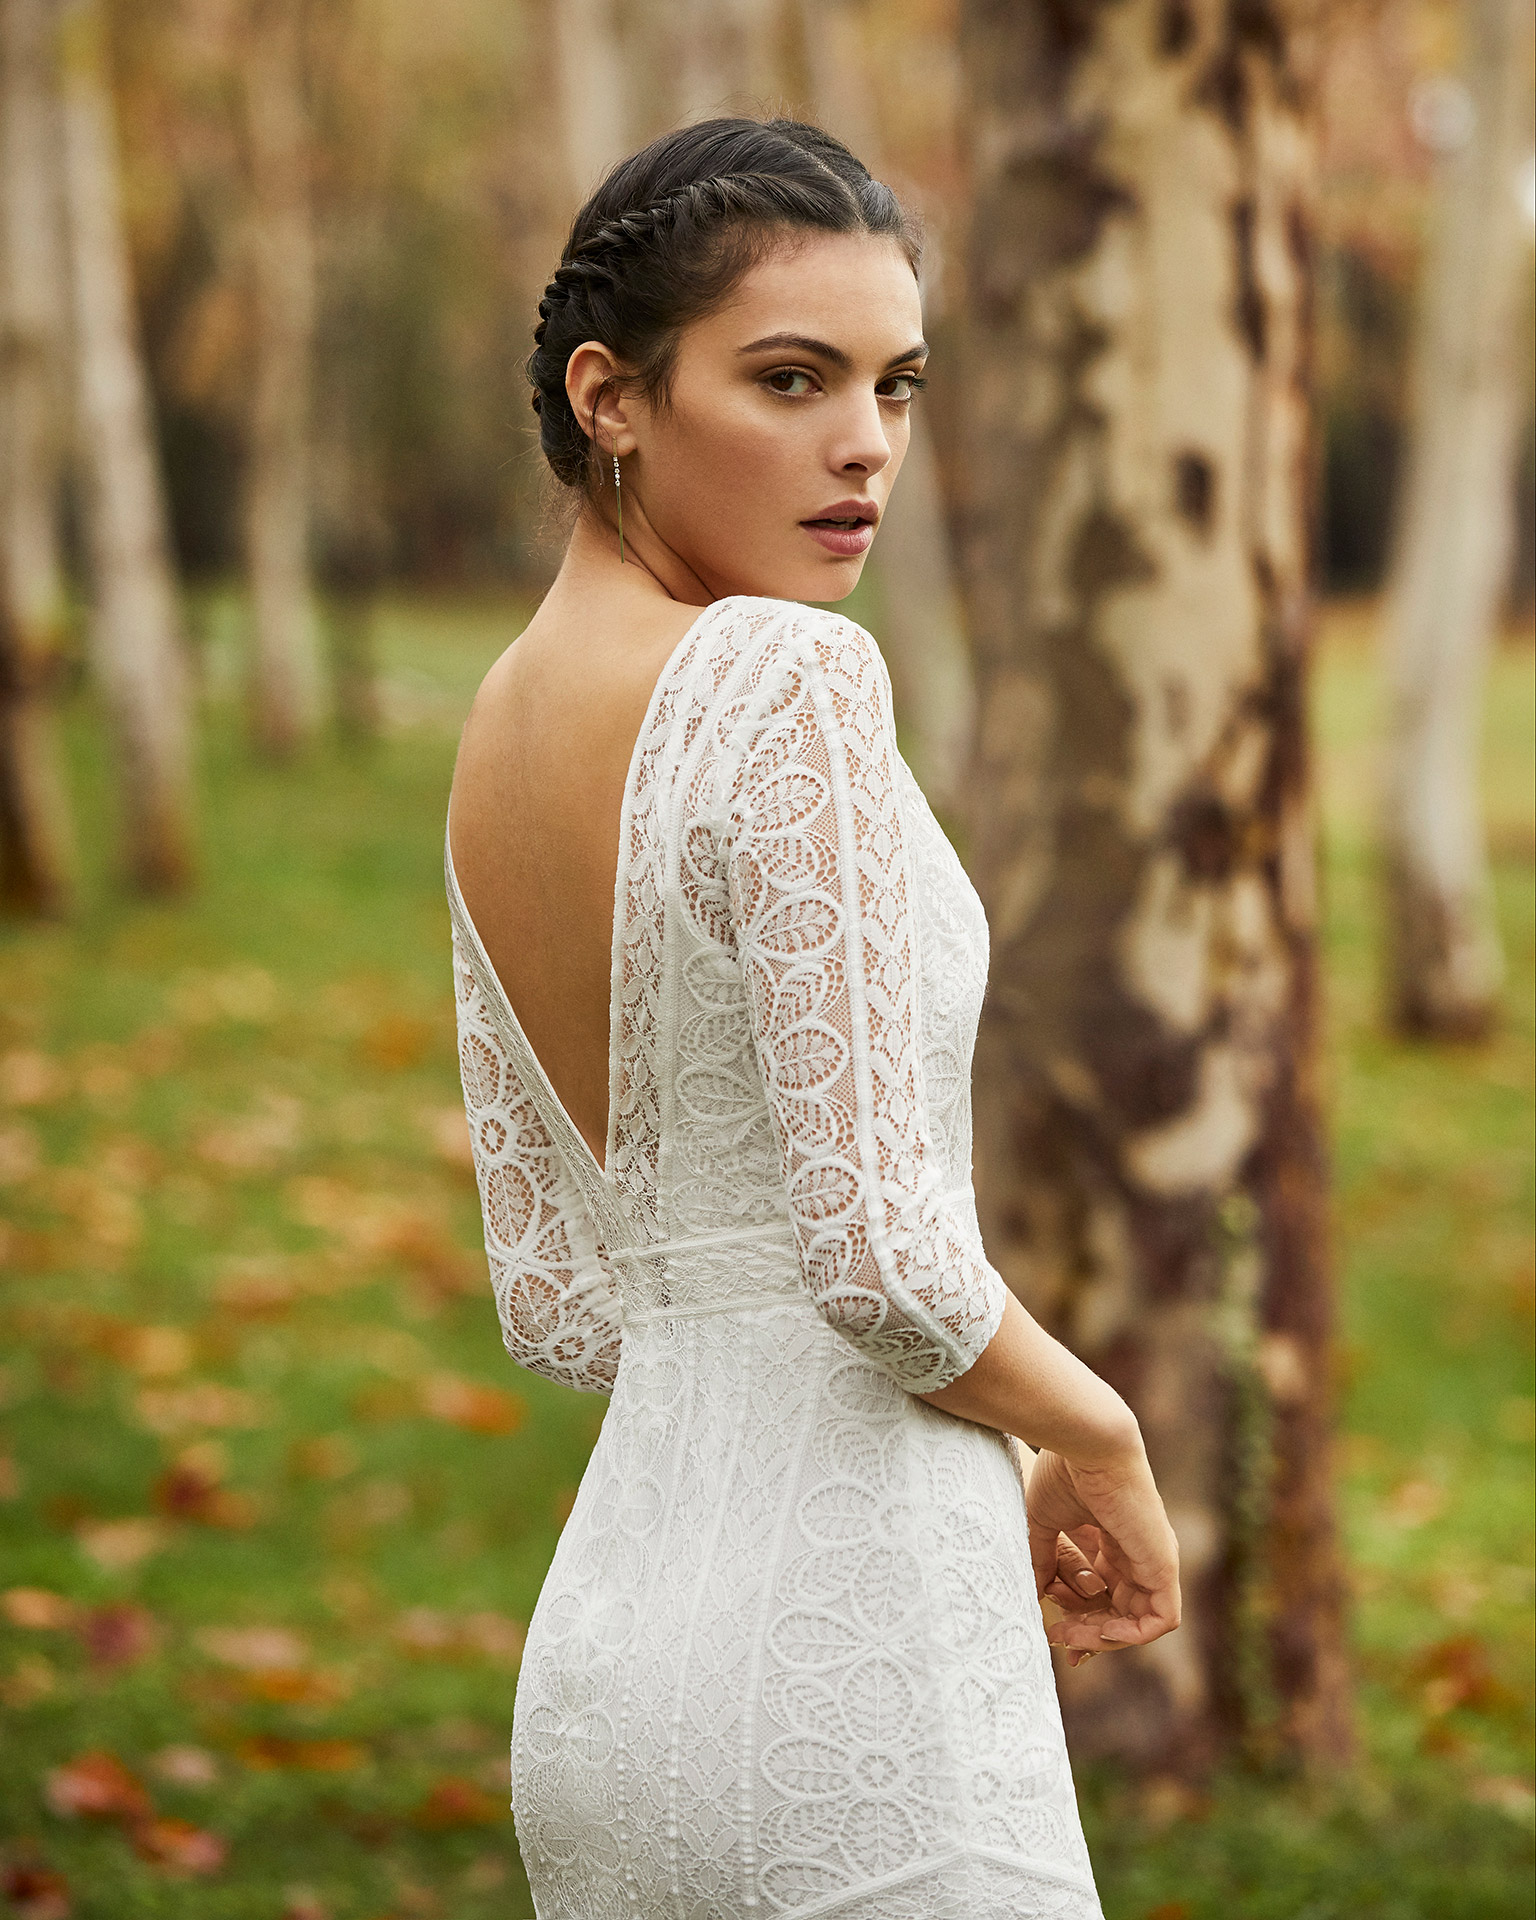 Lightweight lace wedding dress and overlay with front slit, V-neckline and back and three-quarter sleeves. 2020 ALMANOVIA Collection.